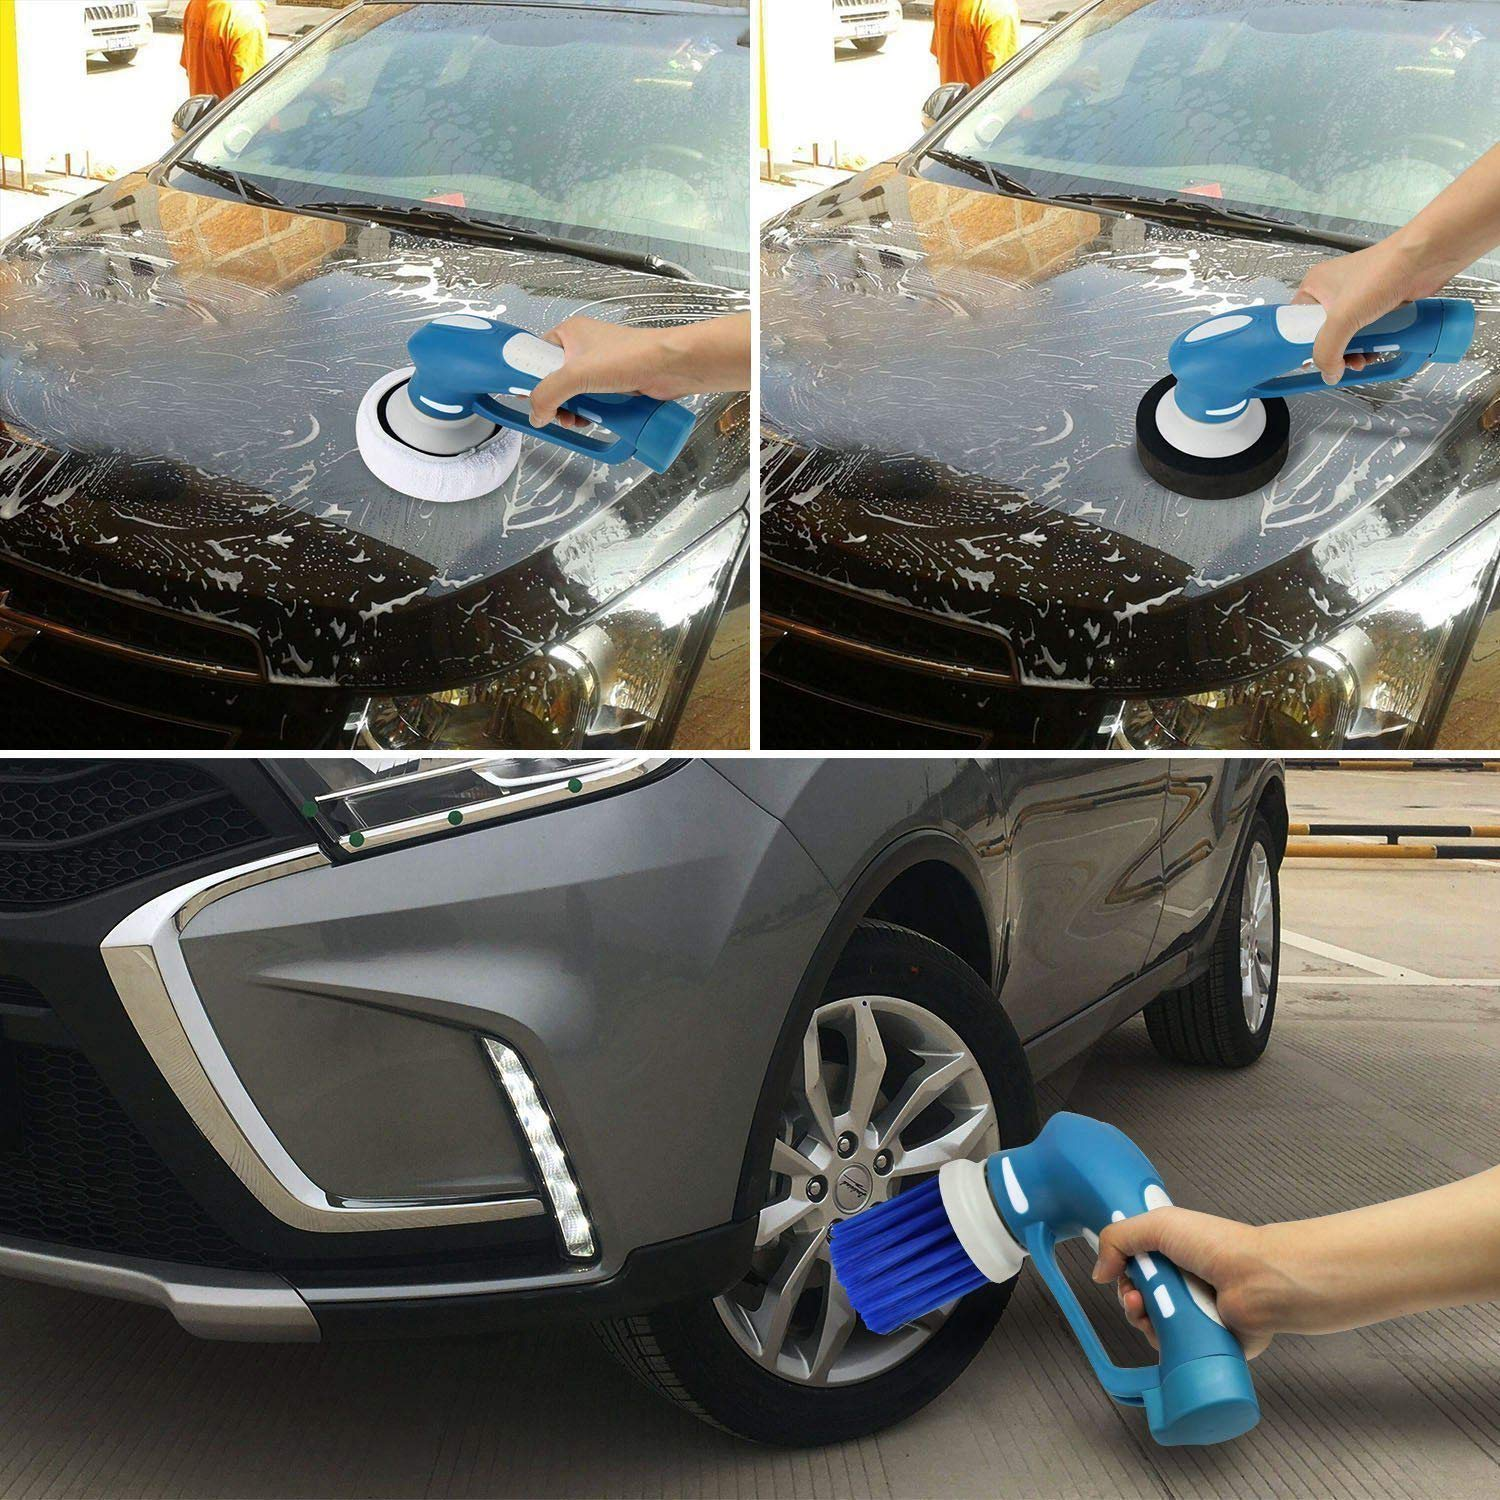 DSstyles Vehicle Car Polishing Mini Wireless Electric Vehicle Car Polisher Machine Clean Waterproof Tool by DSstyles (Image #6)